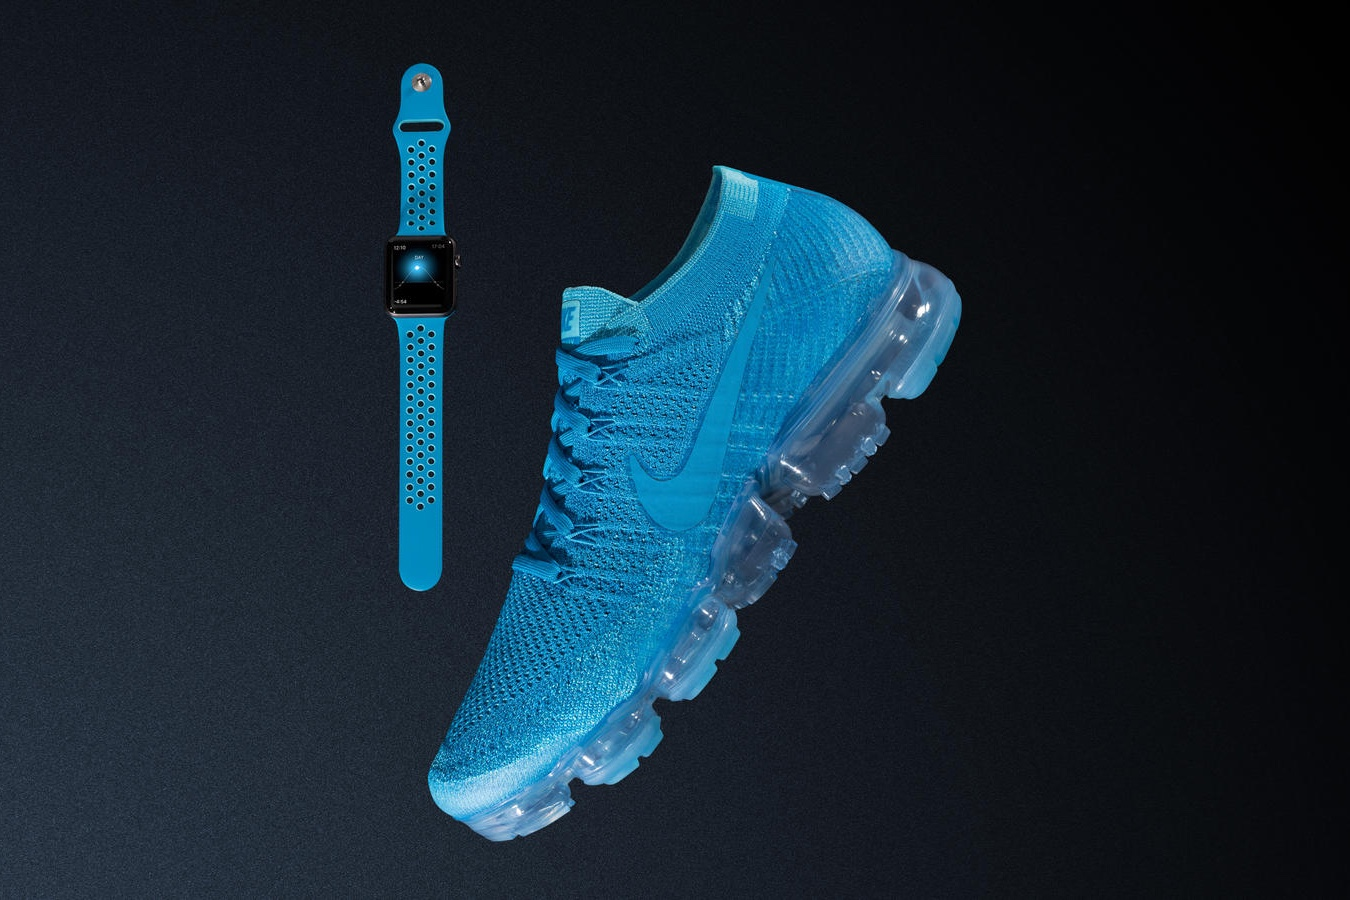 """Nike x Apple Watch Bands Match the Air VaporMax """"Day to Night"""" Pack"""